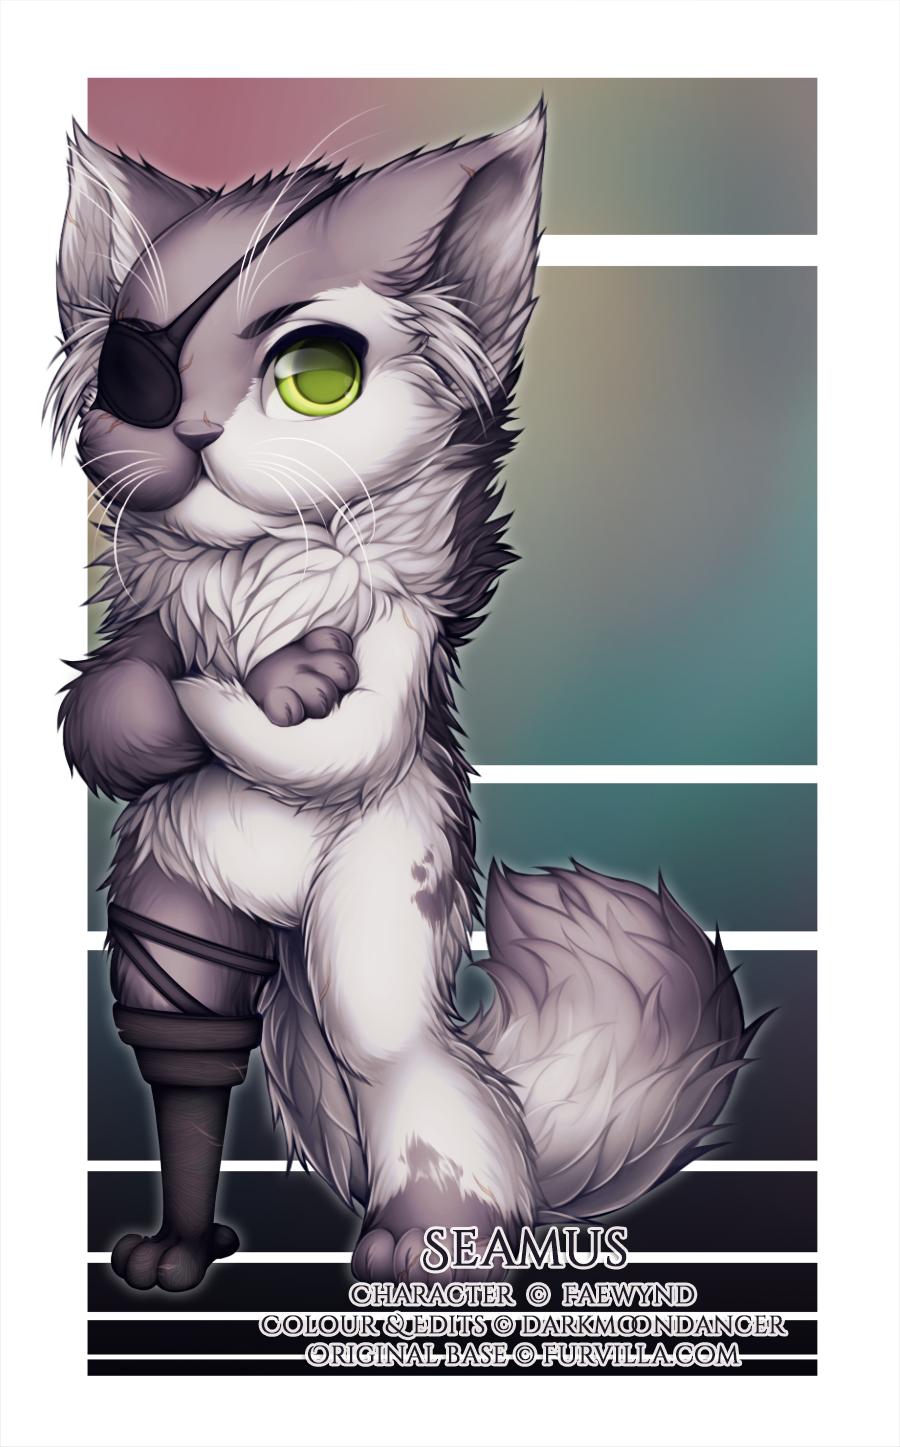 This is Seamus (c) Faewynd, and I got to do his colours as well as edit in the eyepatch and pegleg!